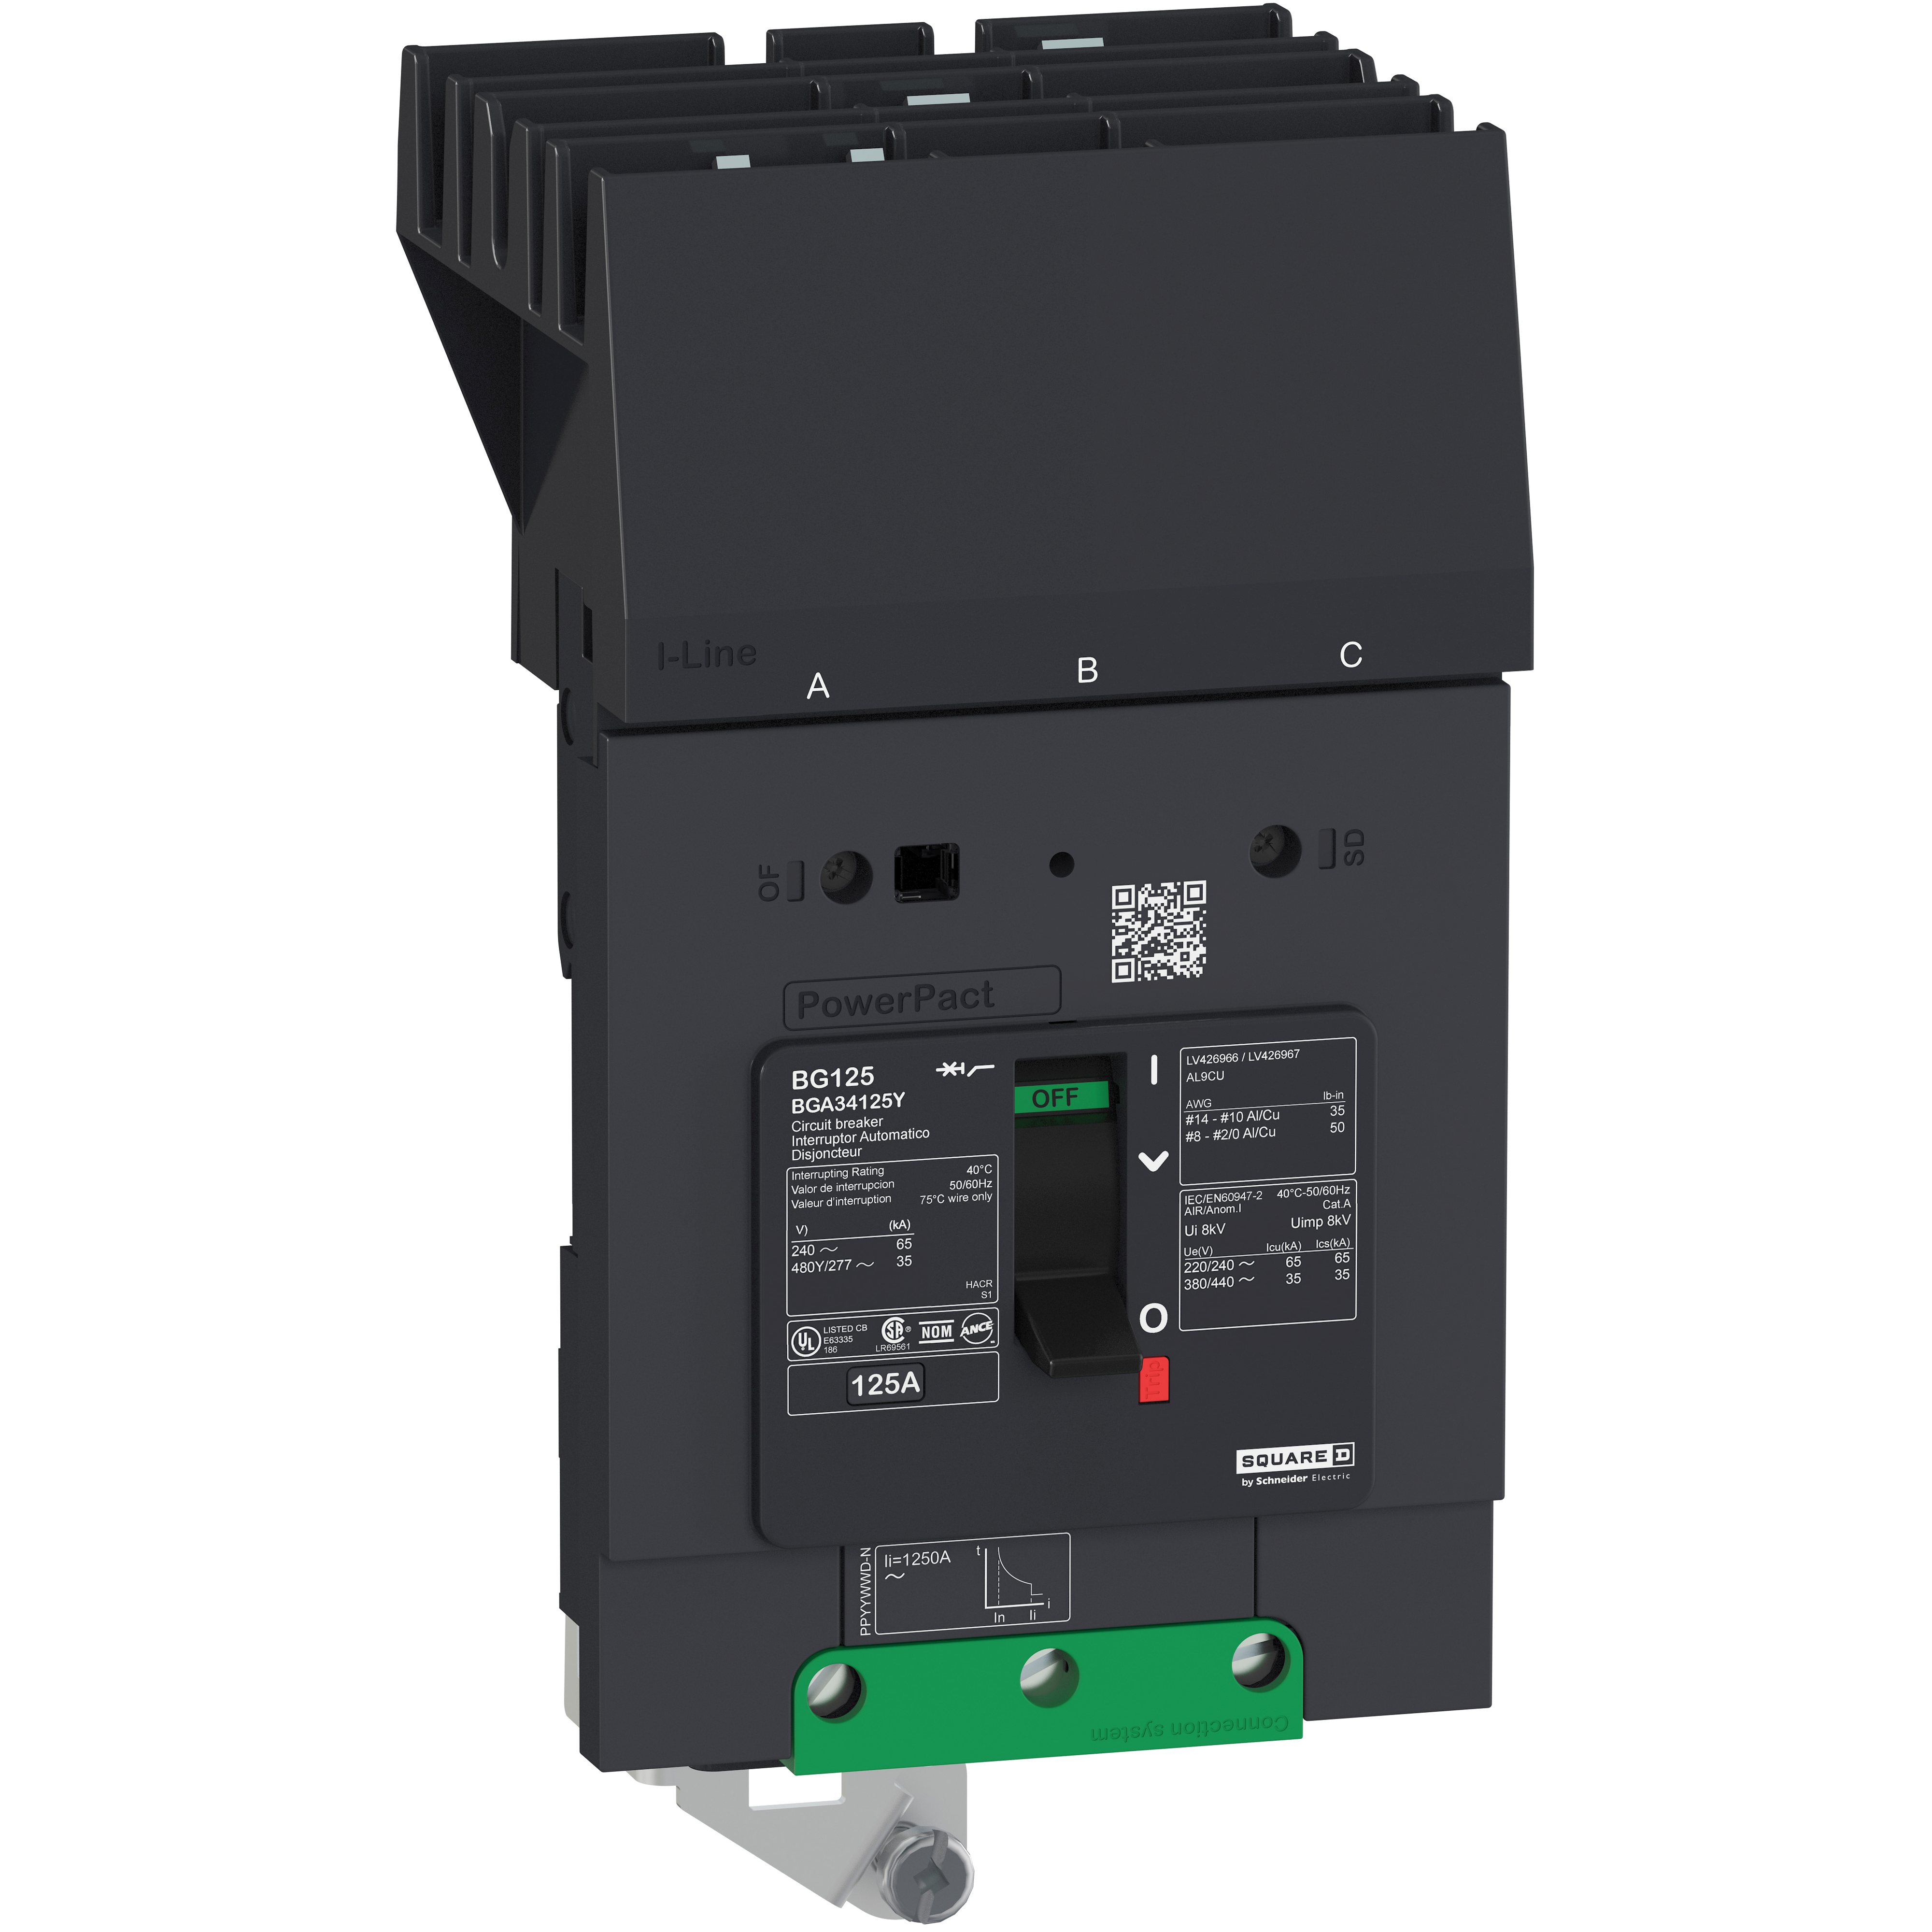 SQUARE D PowerPact B Circuit Breaker, 35A, 3P, 480Y/277V AC, 35kA at 480/277 UL, I-Line